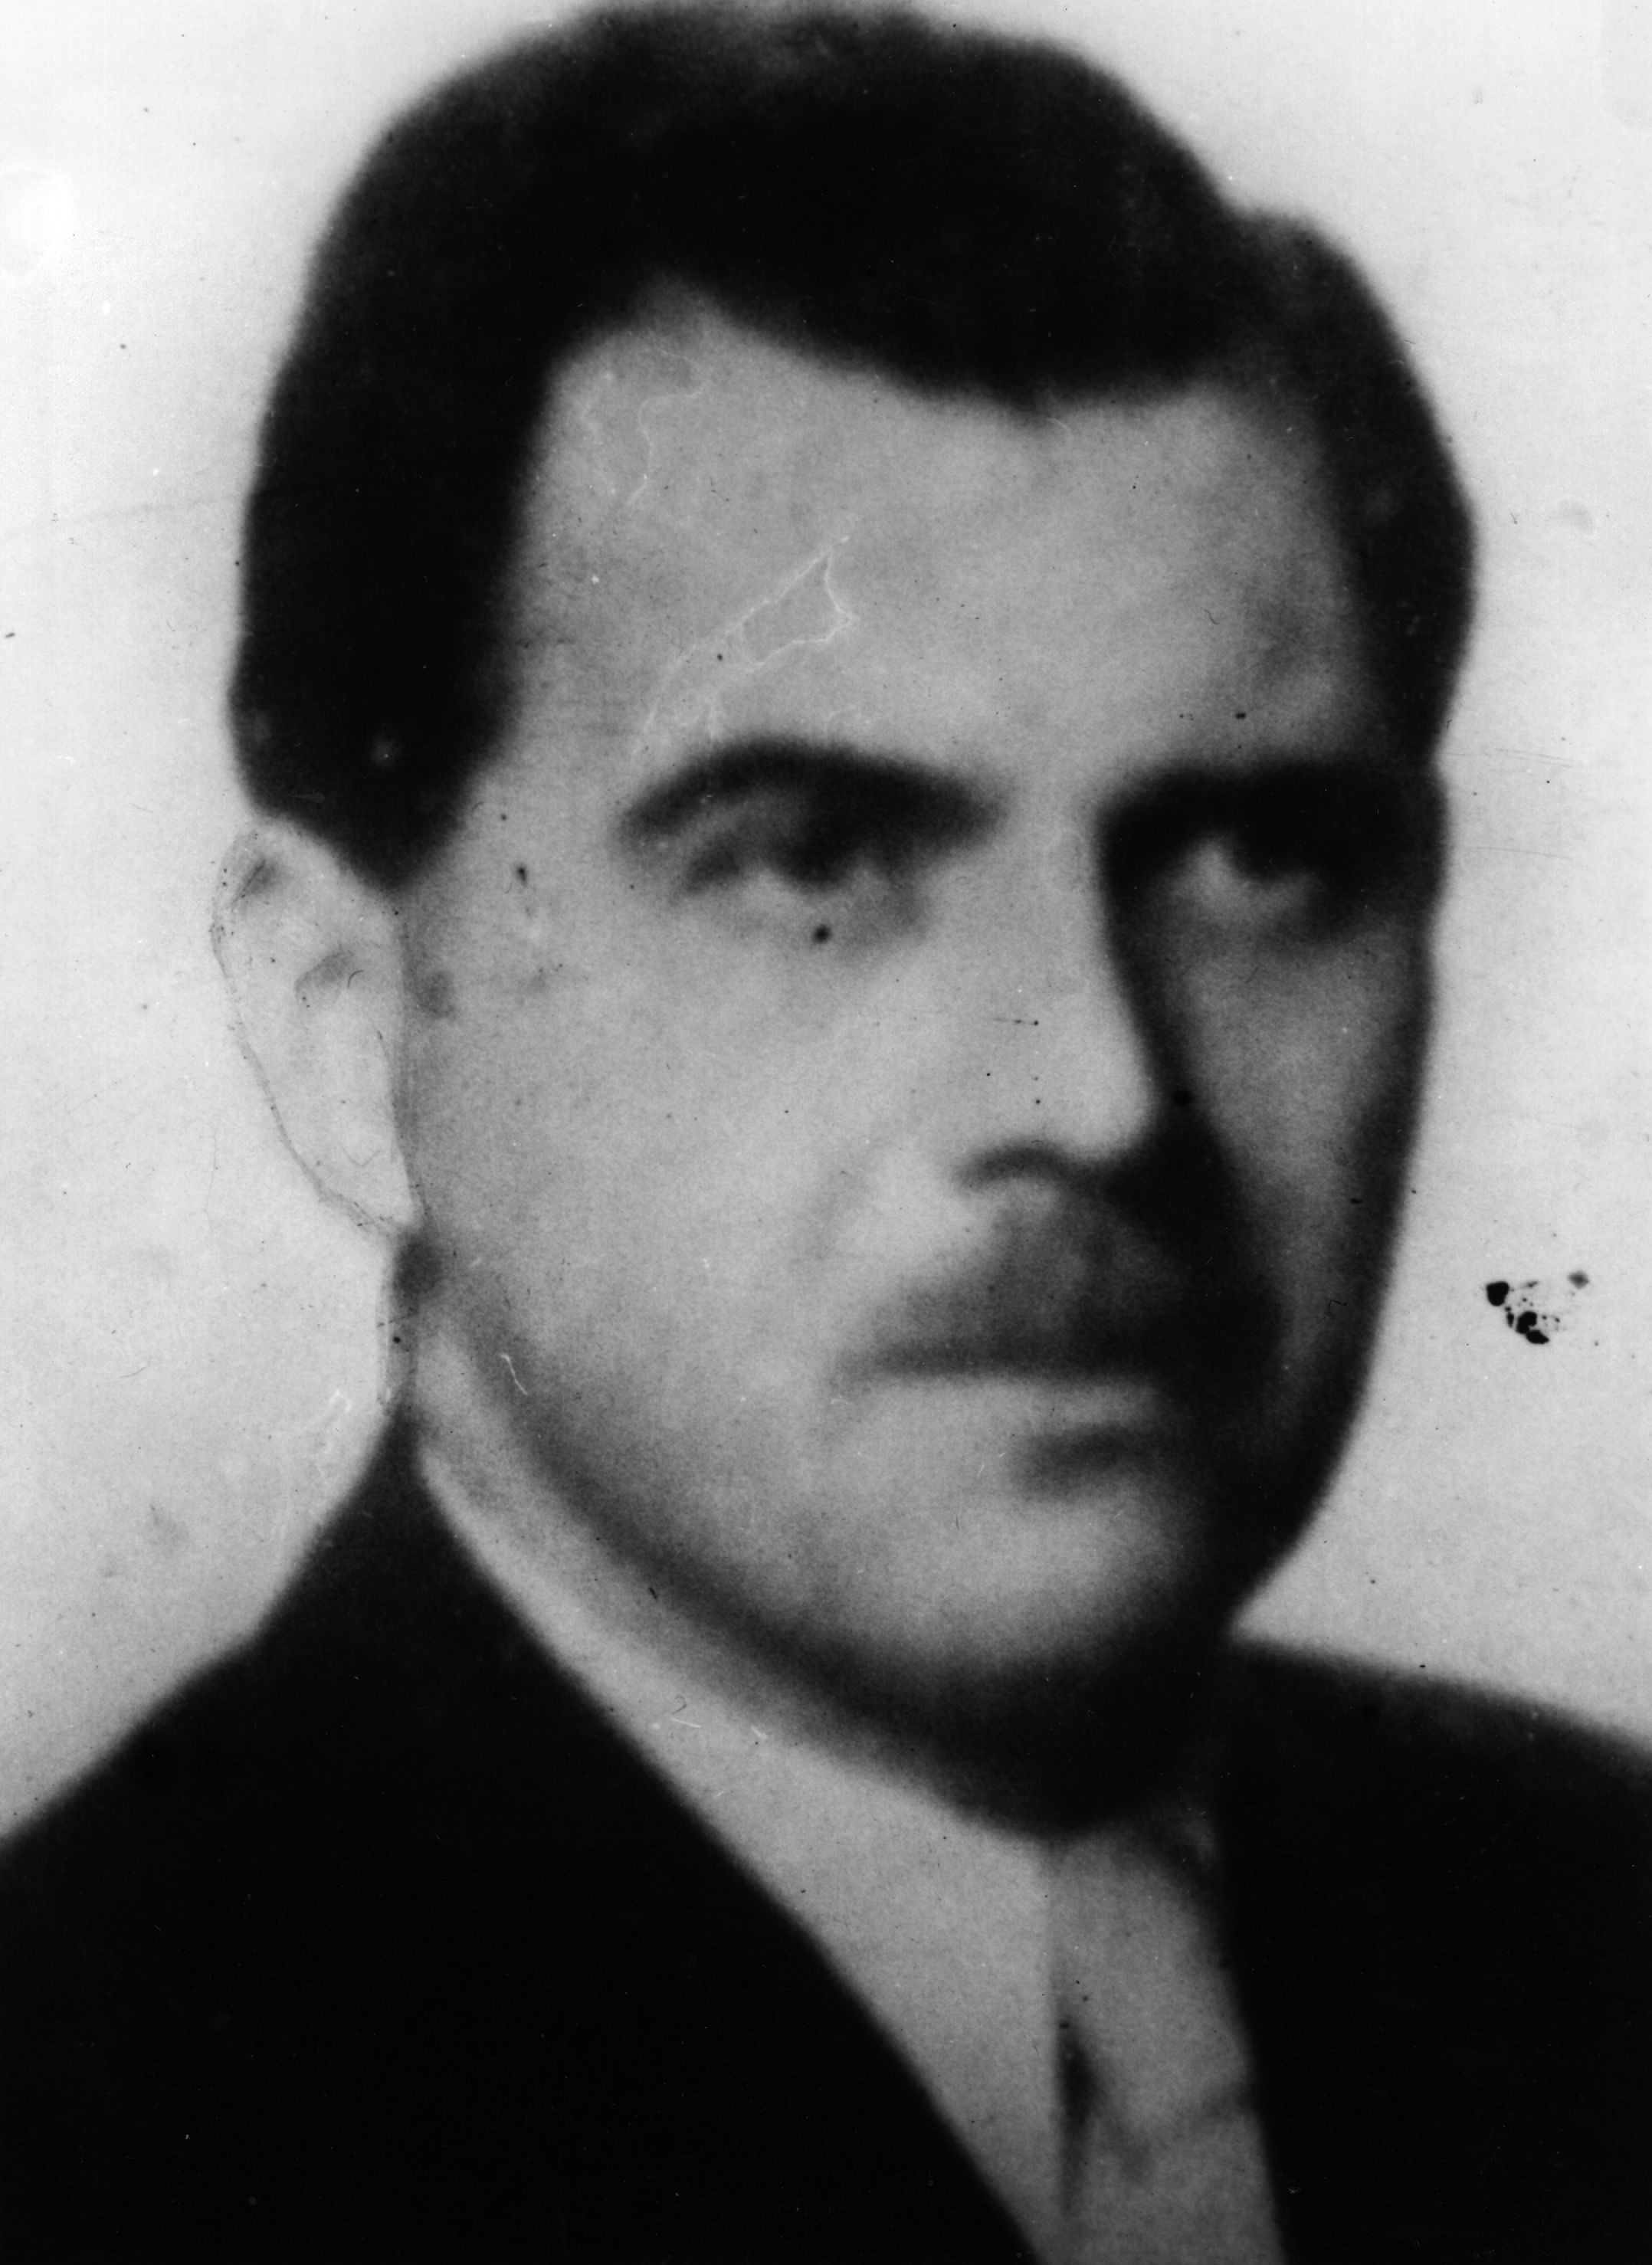 an introduction to the history of joseph mengele and his atrocities One witness described how nazi dr josef mengele ripped an infant from its mother`s womb, then hurled it into an oven because it wasn`t a twin as he had hoped.